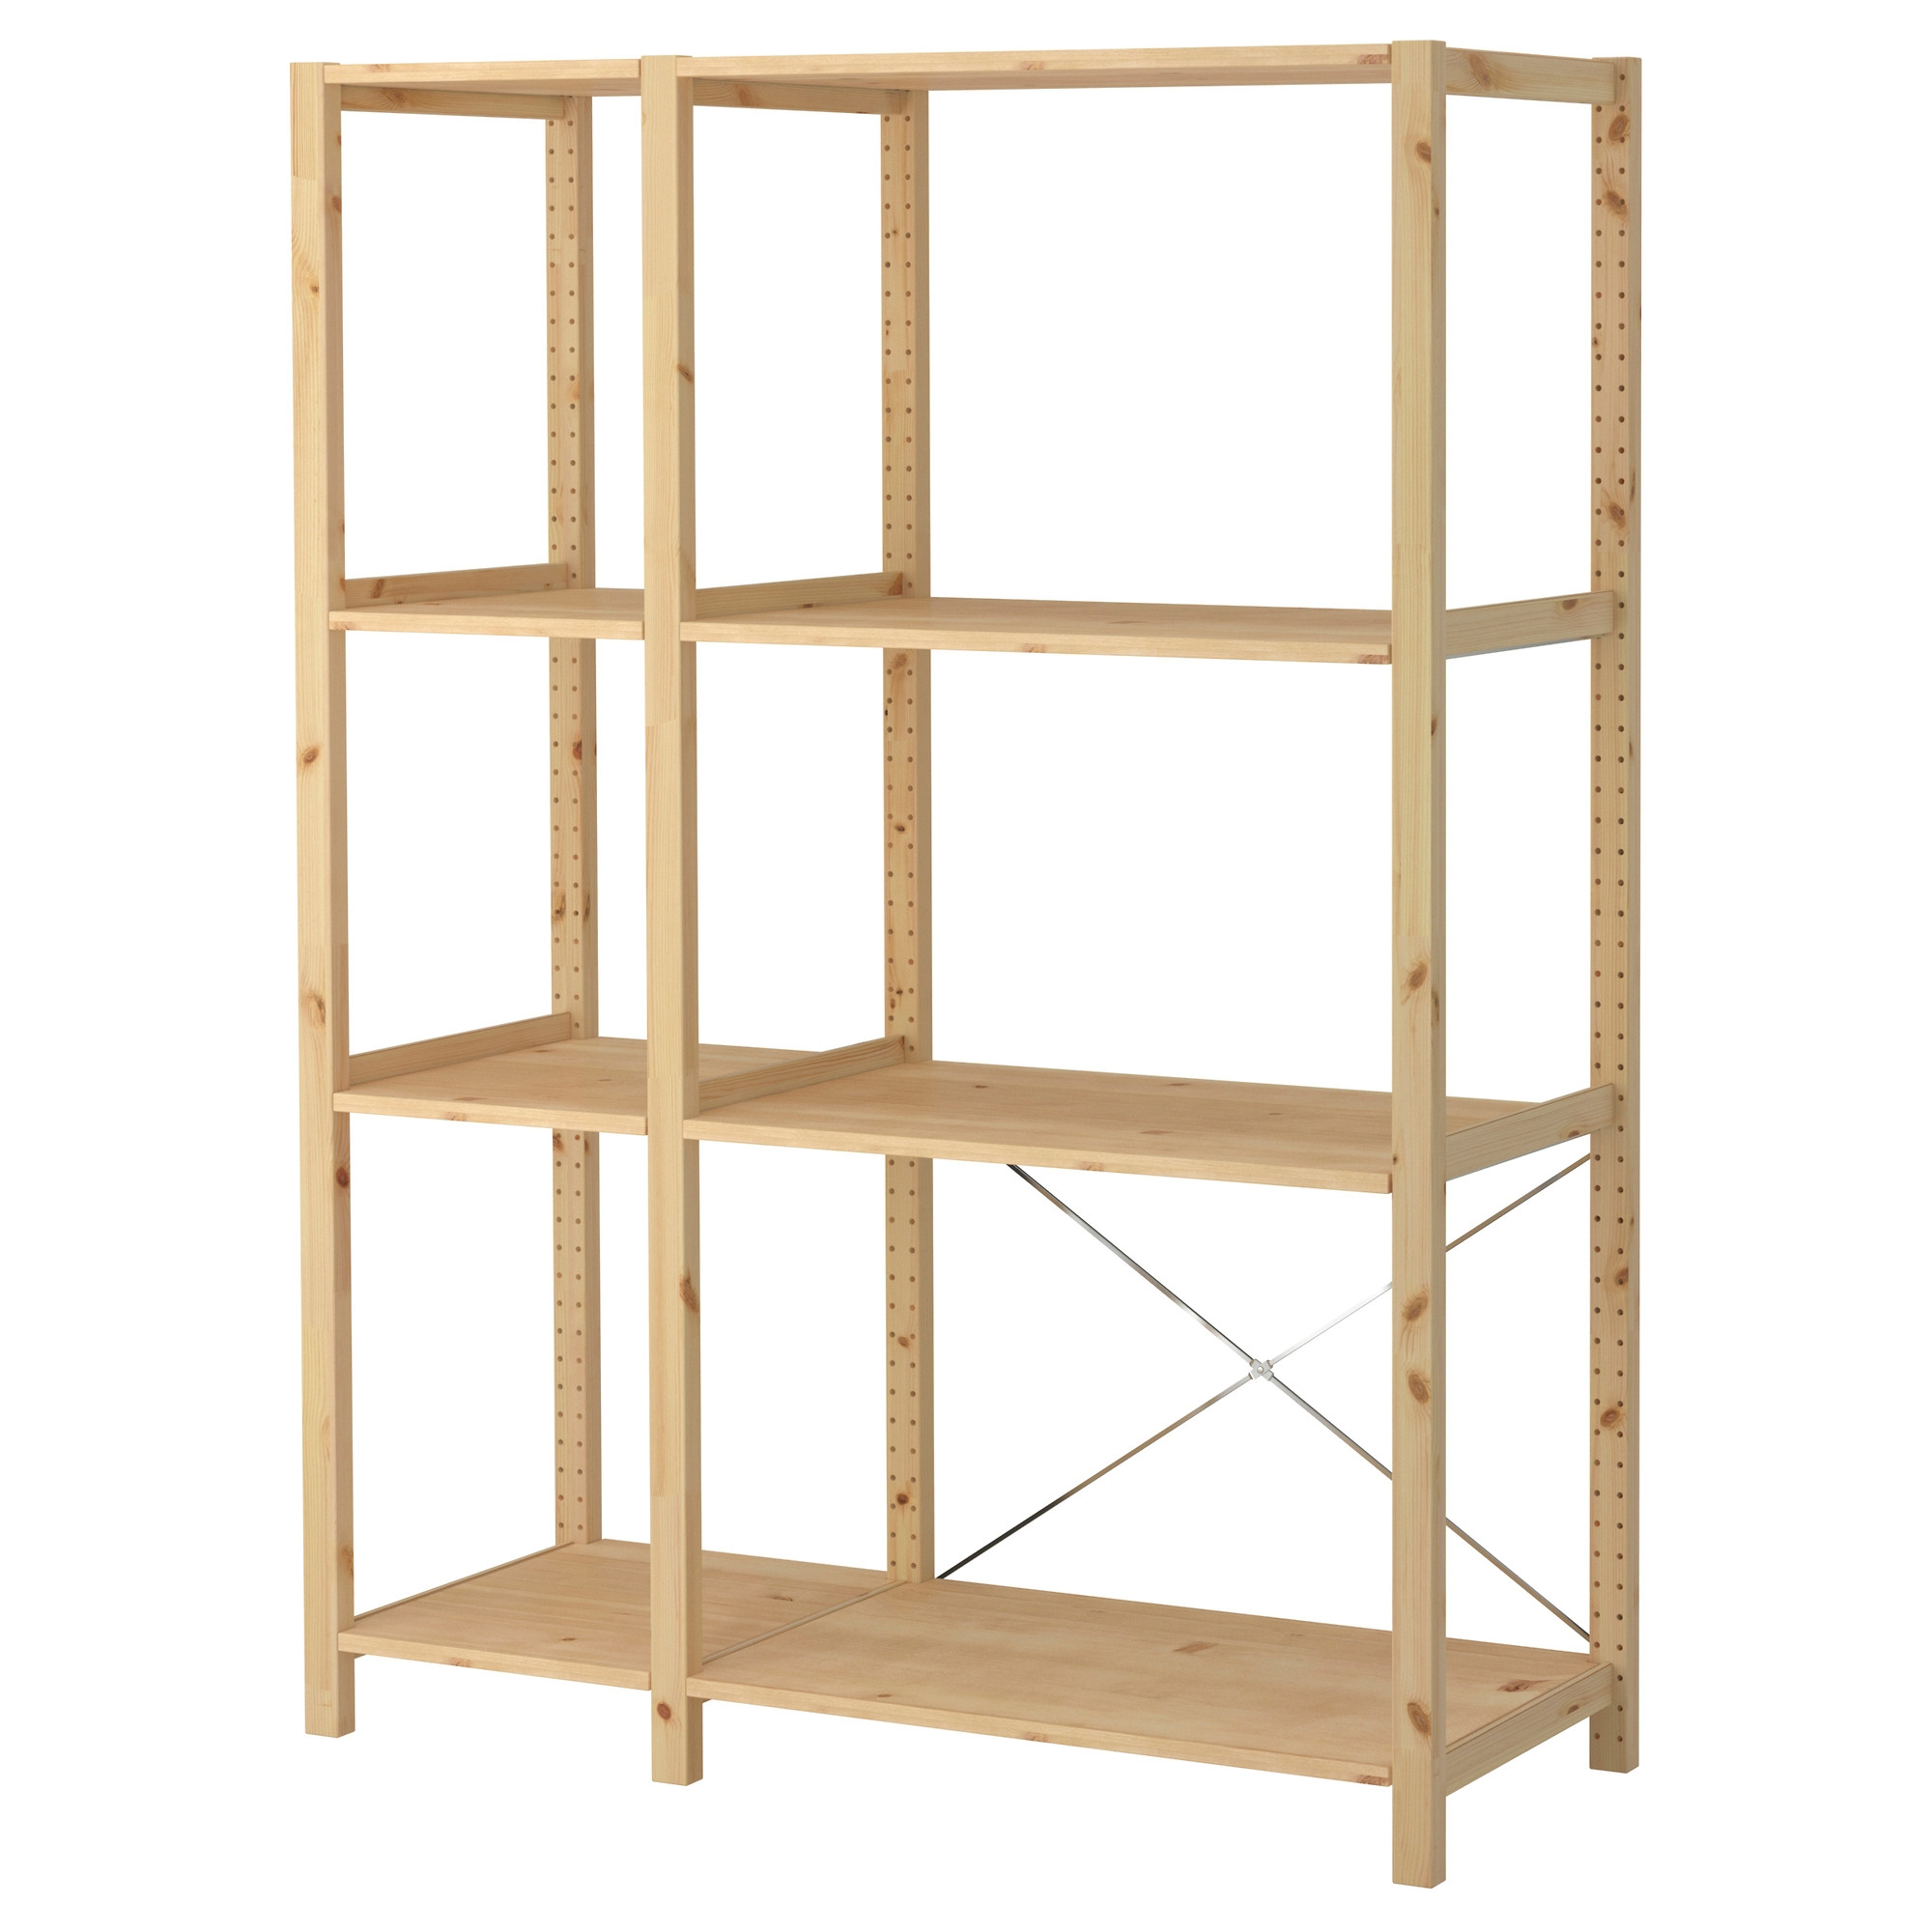 Shelving Units Shelving Systems Ikea For Cheap Shelving Units (View 6 of 15)